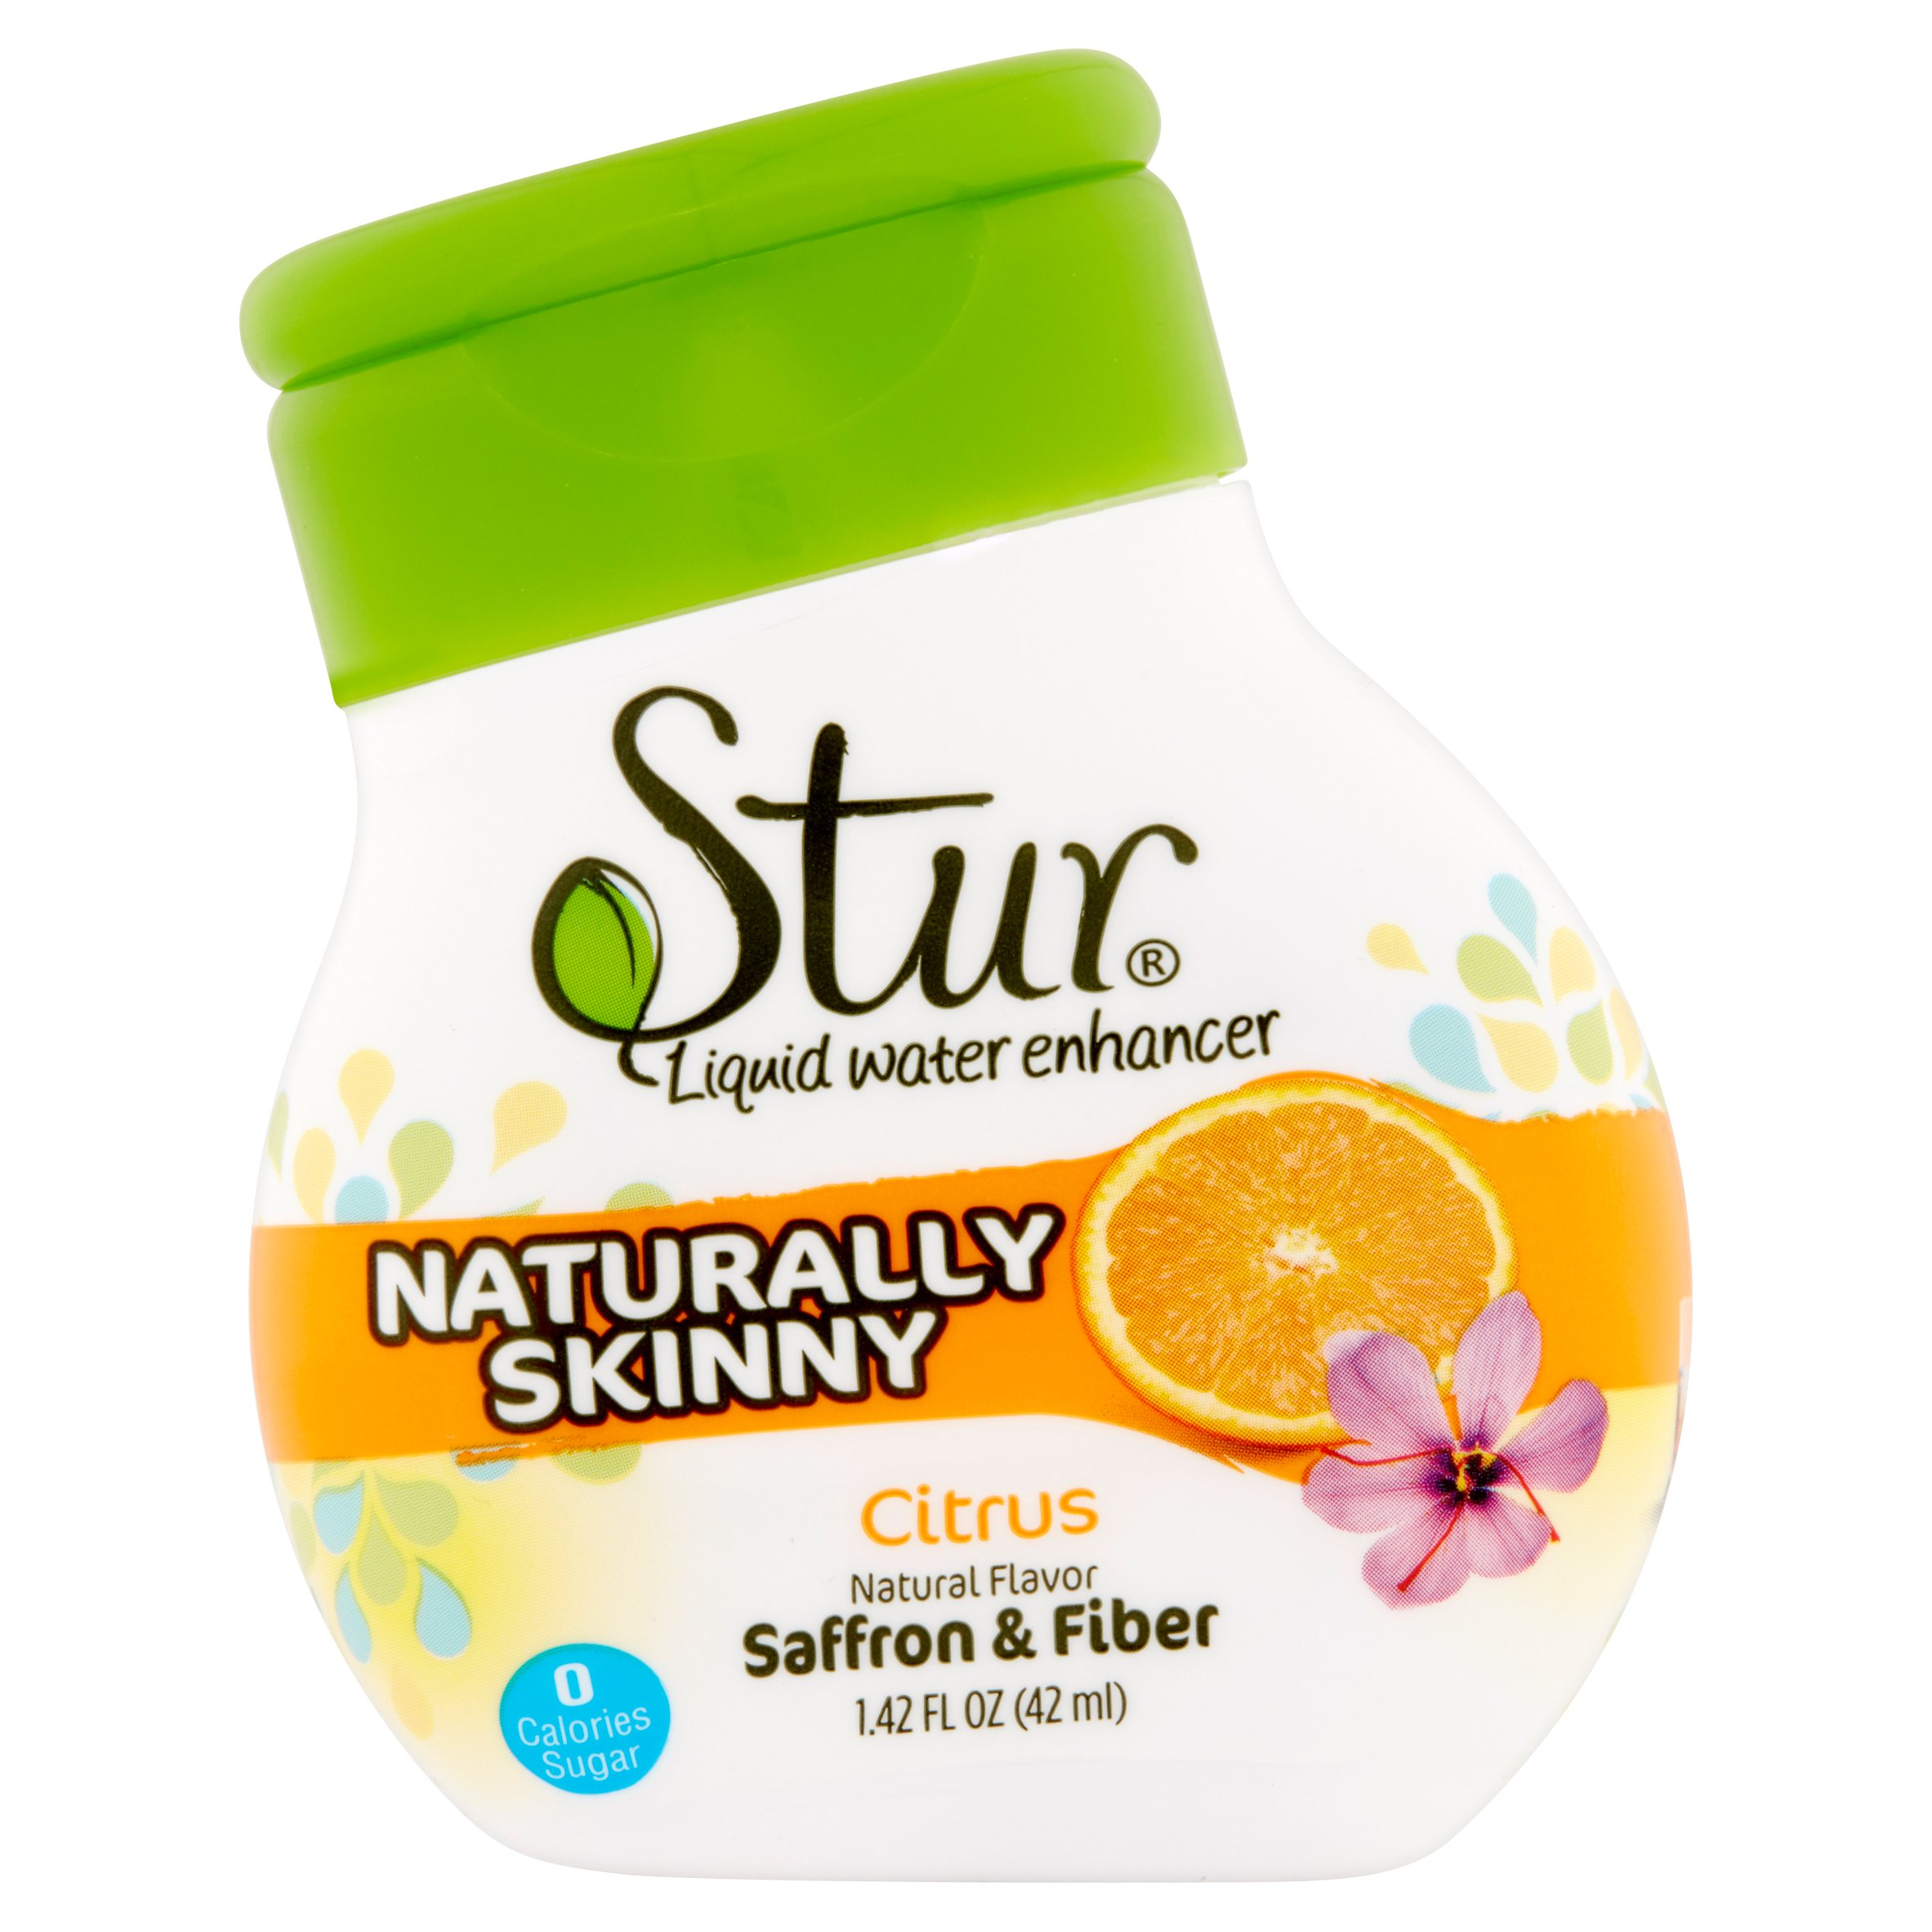 Stur Naturally Skinny Citrus Liquid Water Enhancer, 1.42 fl oz, 6 pack by Dyla LLC